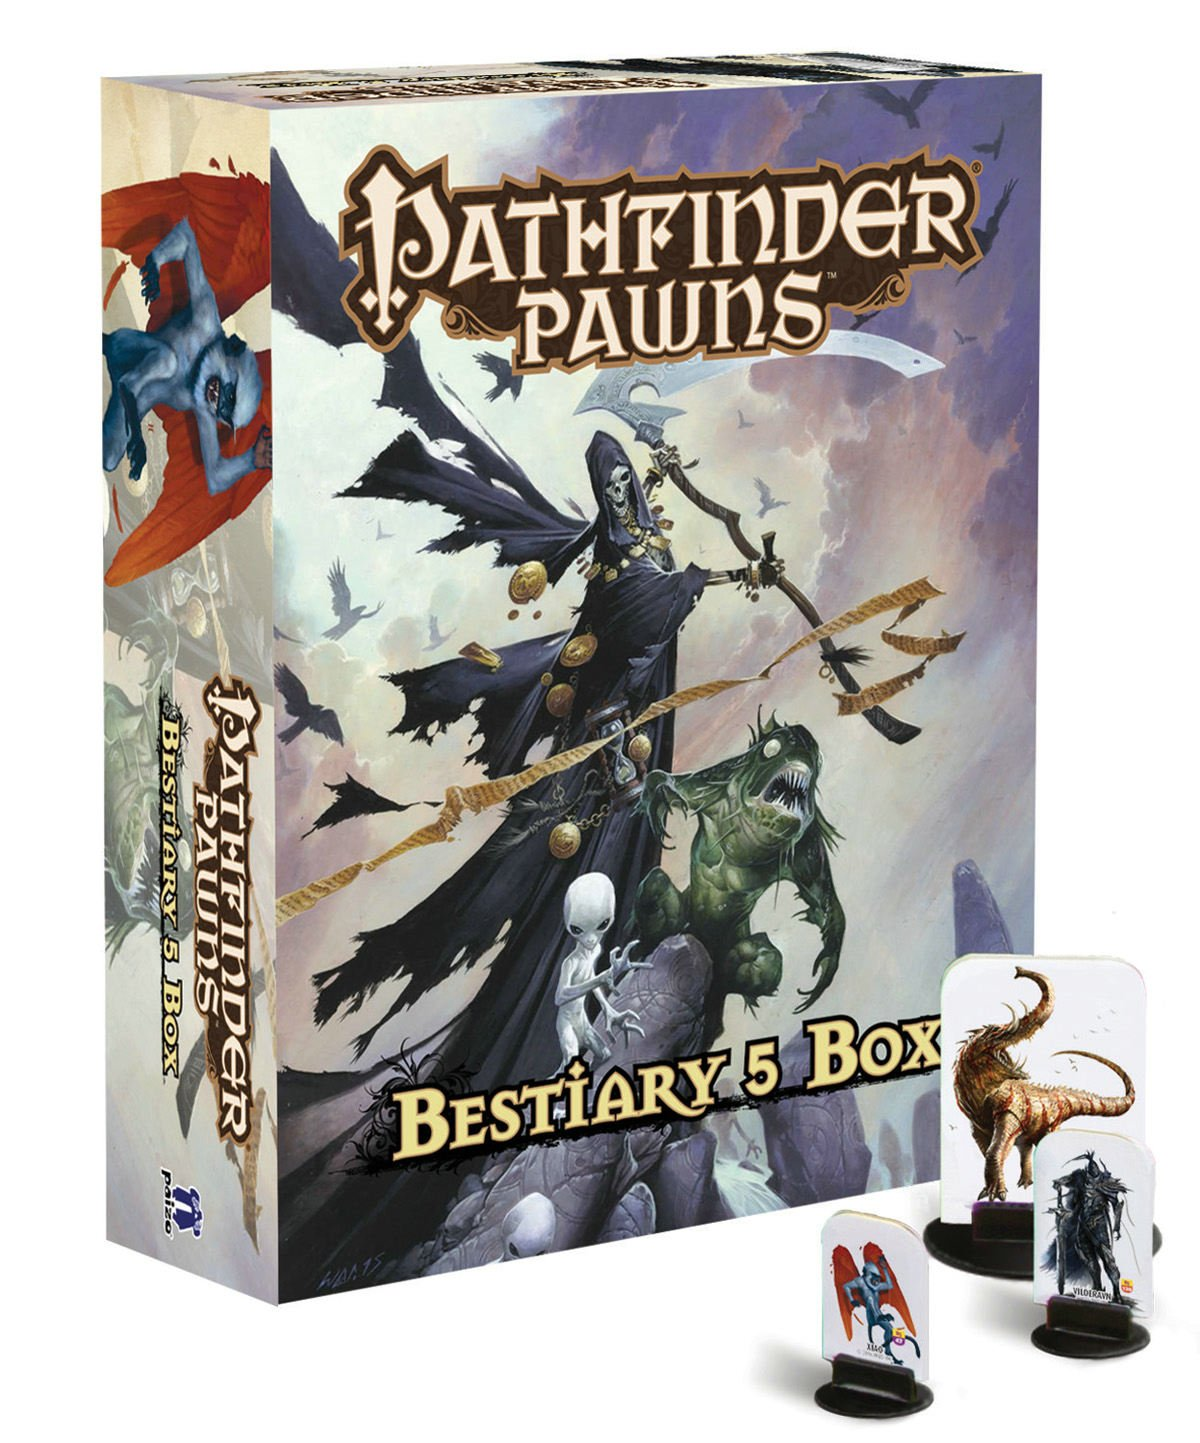 Pathfinder Pawns: Bestiary 5 Box: Staff, Paizo: Amazon.es: Juguetes y juegos